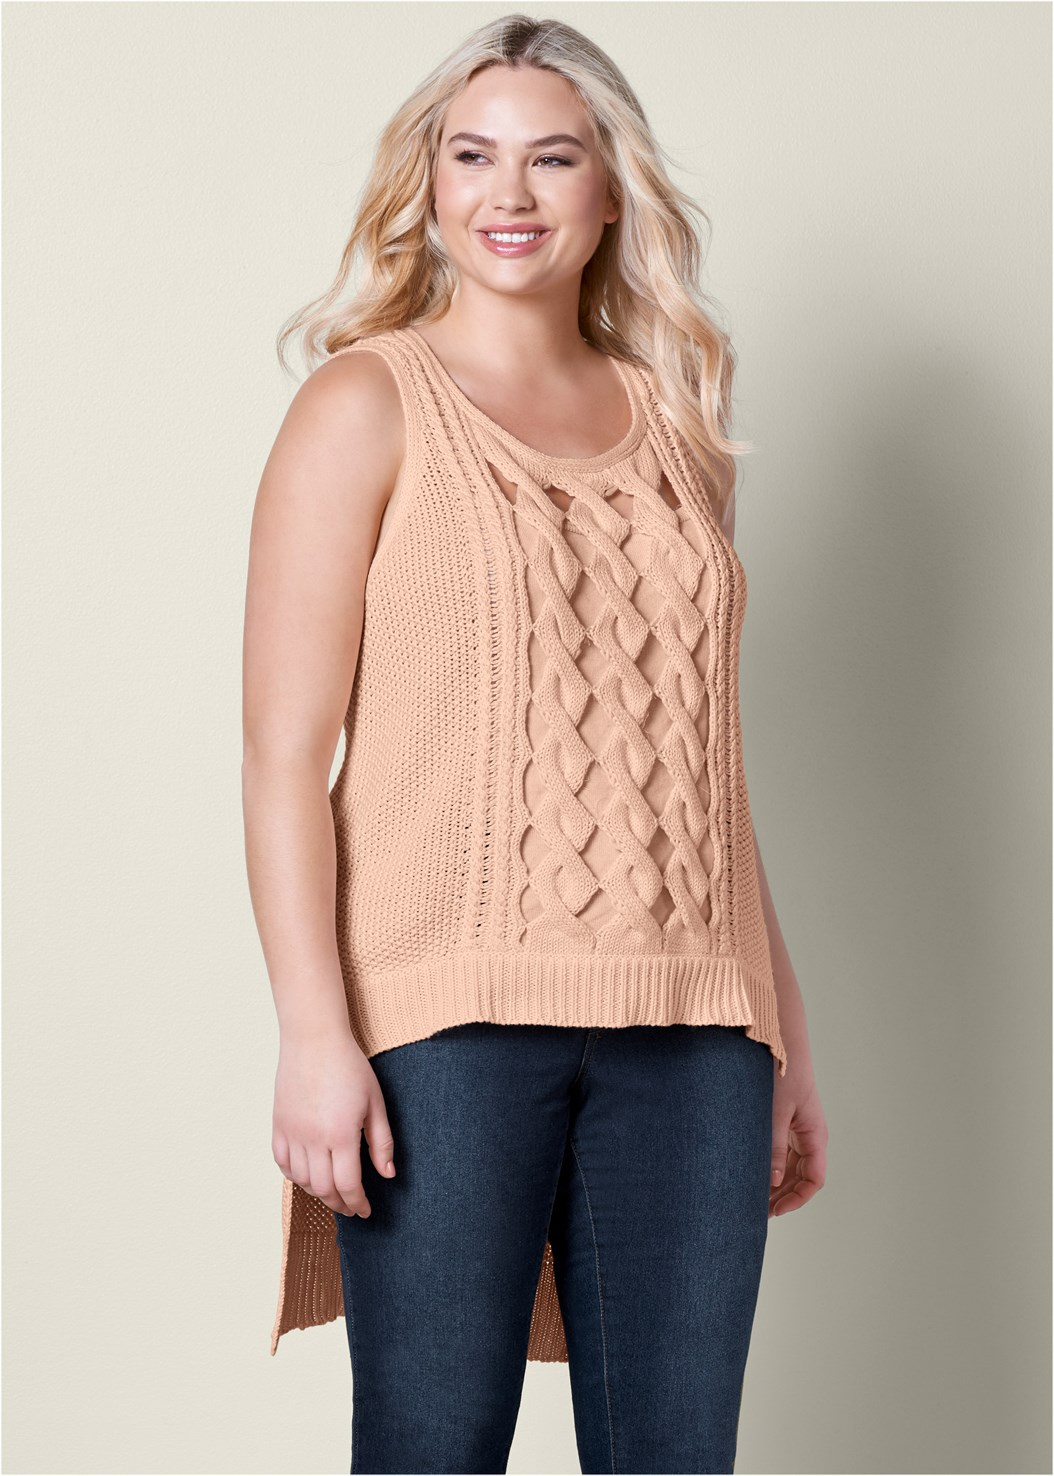 Cut Out Detail Sleeveless Sweater,Mid Rise Color Skinny Jeans